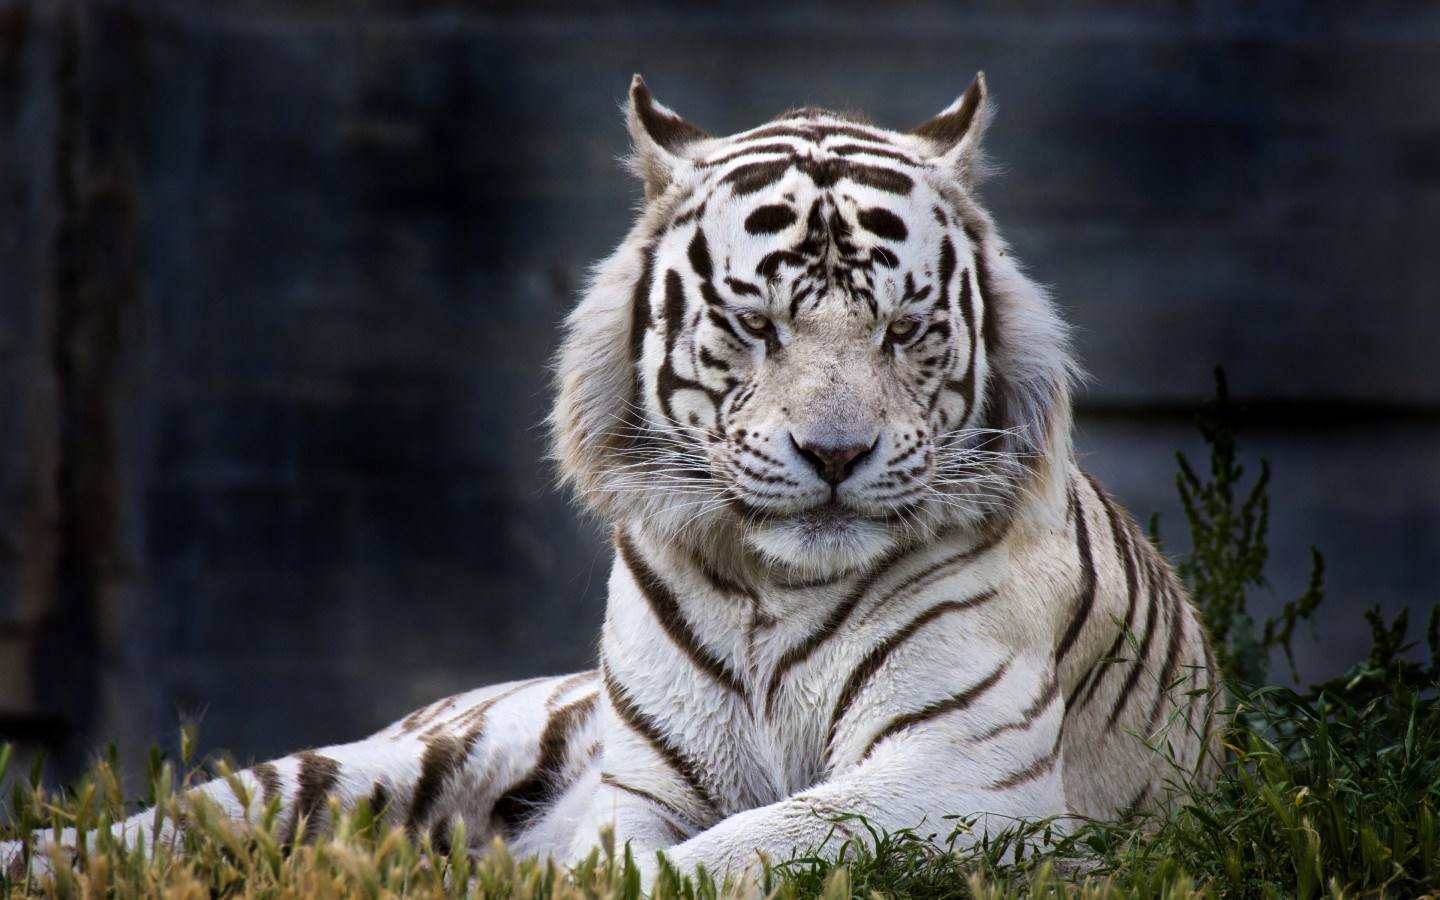 The white tiger from Madrid Zoo wallpaper 1440x900